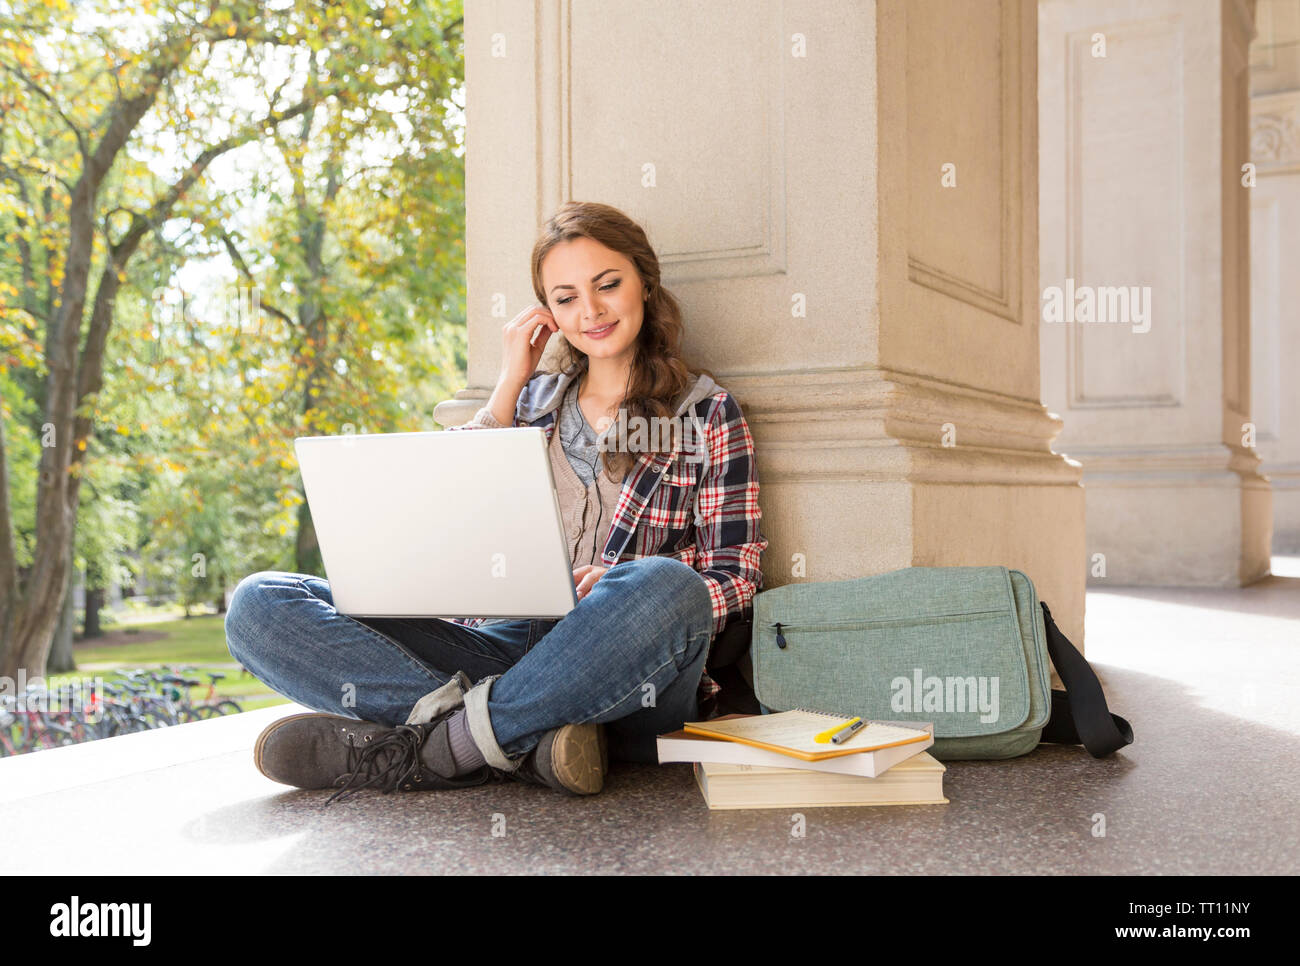 Young Woman Female College University Student With Earbuds Headphones Studying Using Laptop Computer Stock Photo Alamy